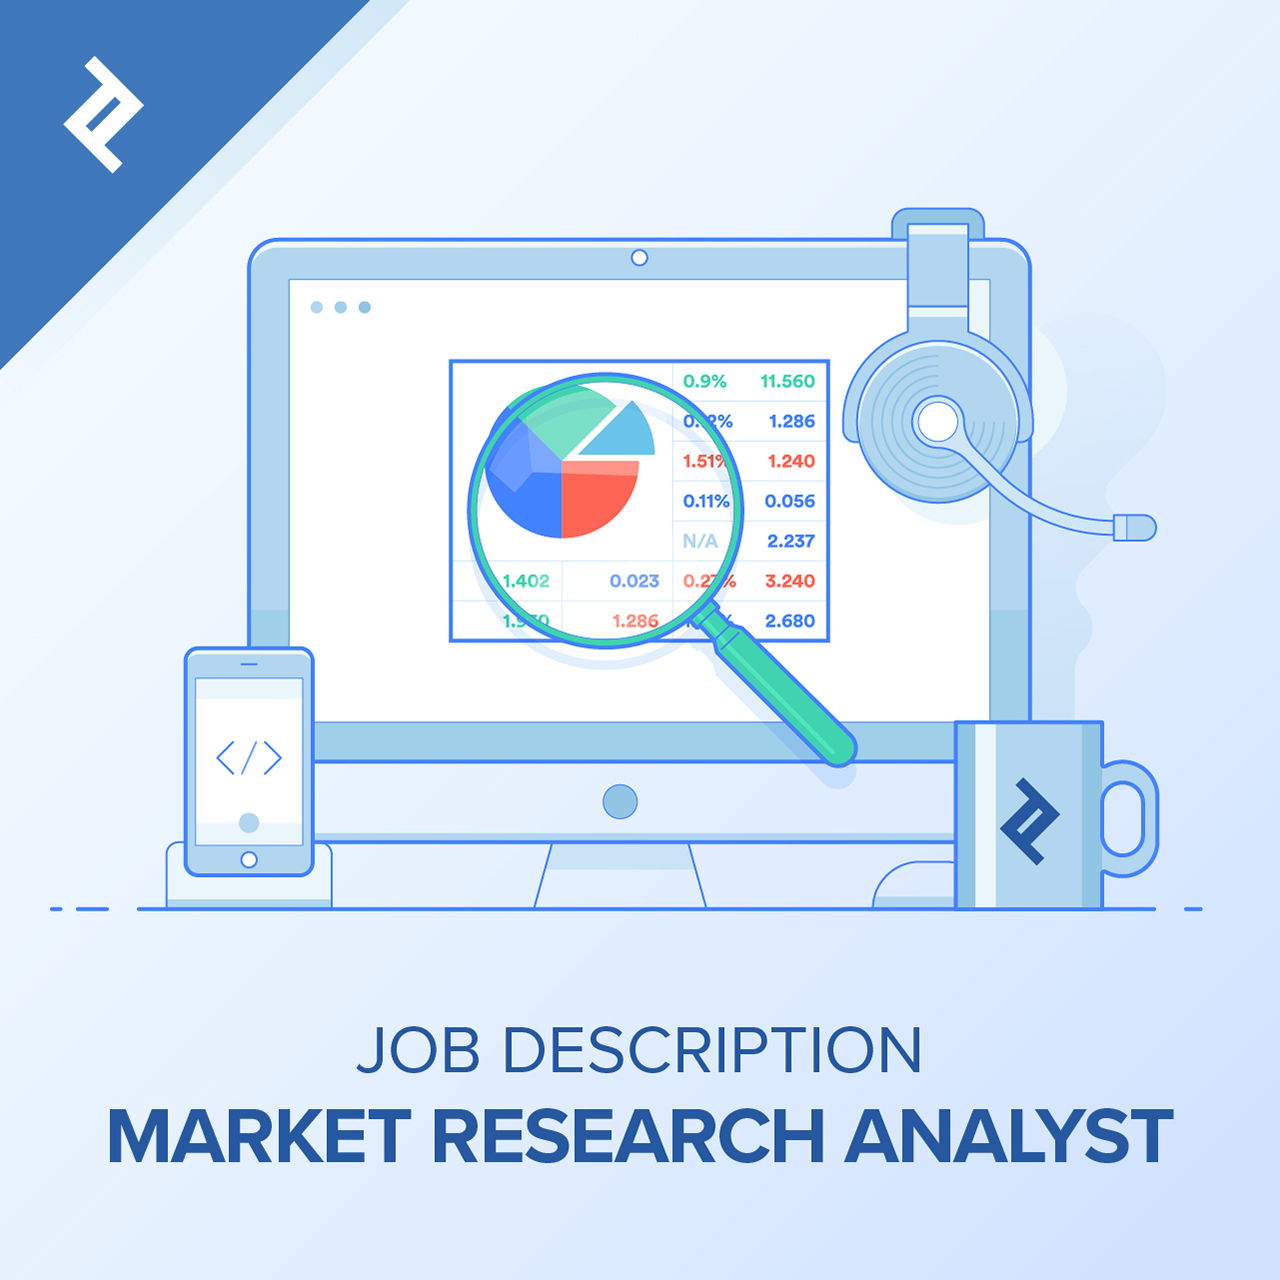 market research analyst job description template toptal